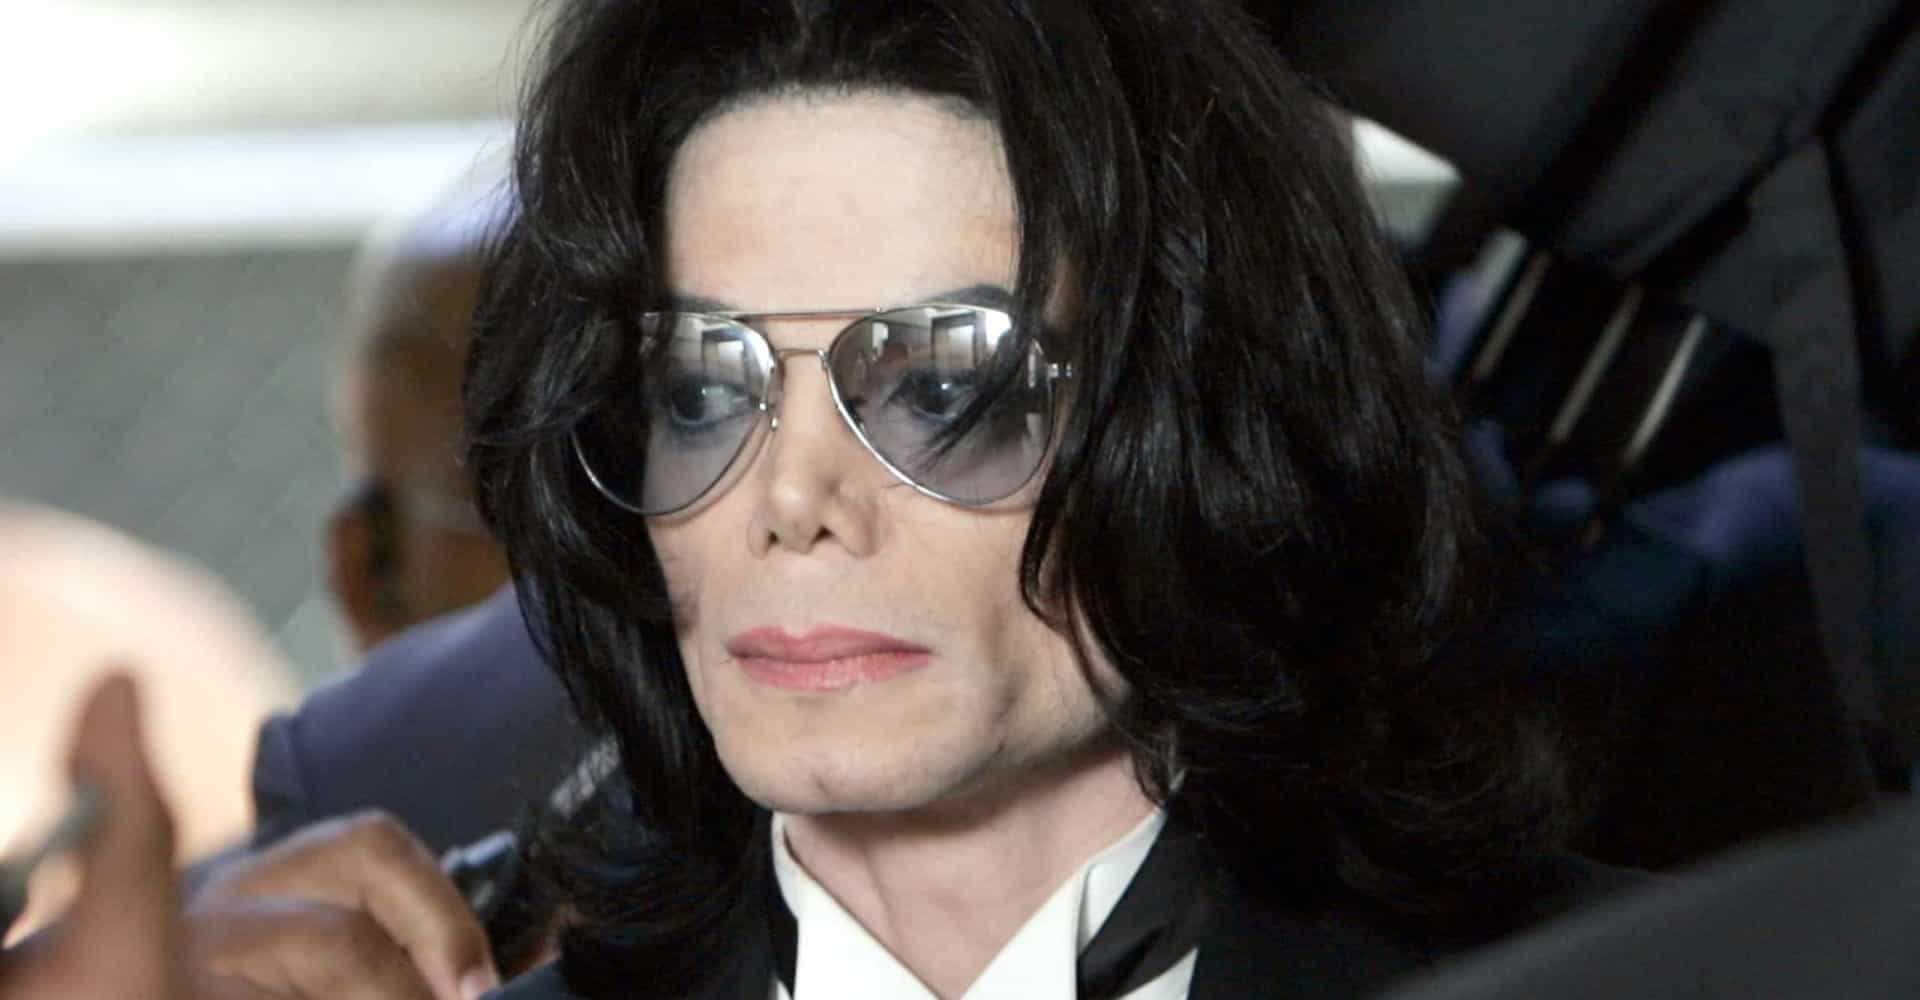 Controversial, cute, and random facts about the King of Pop